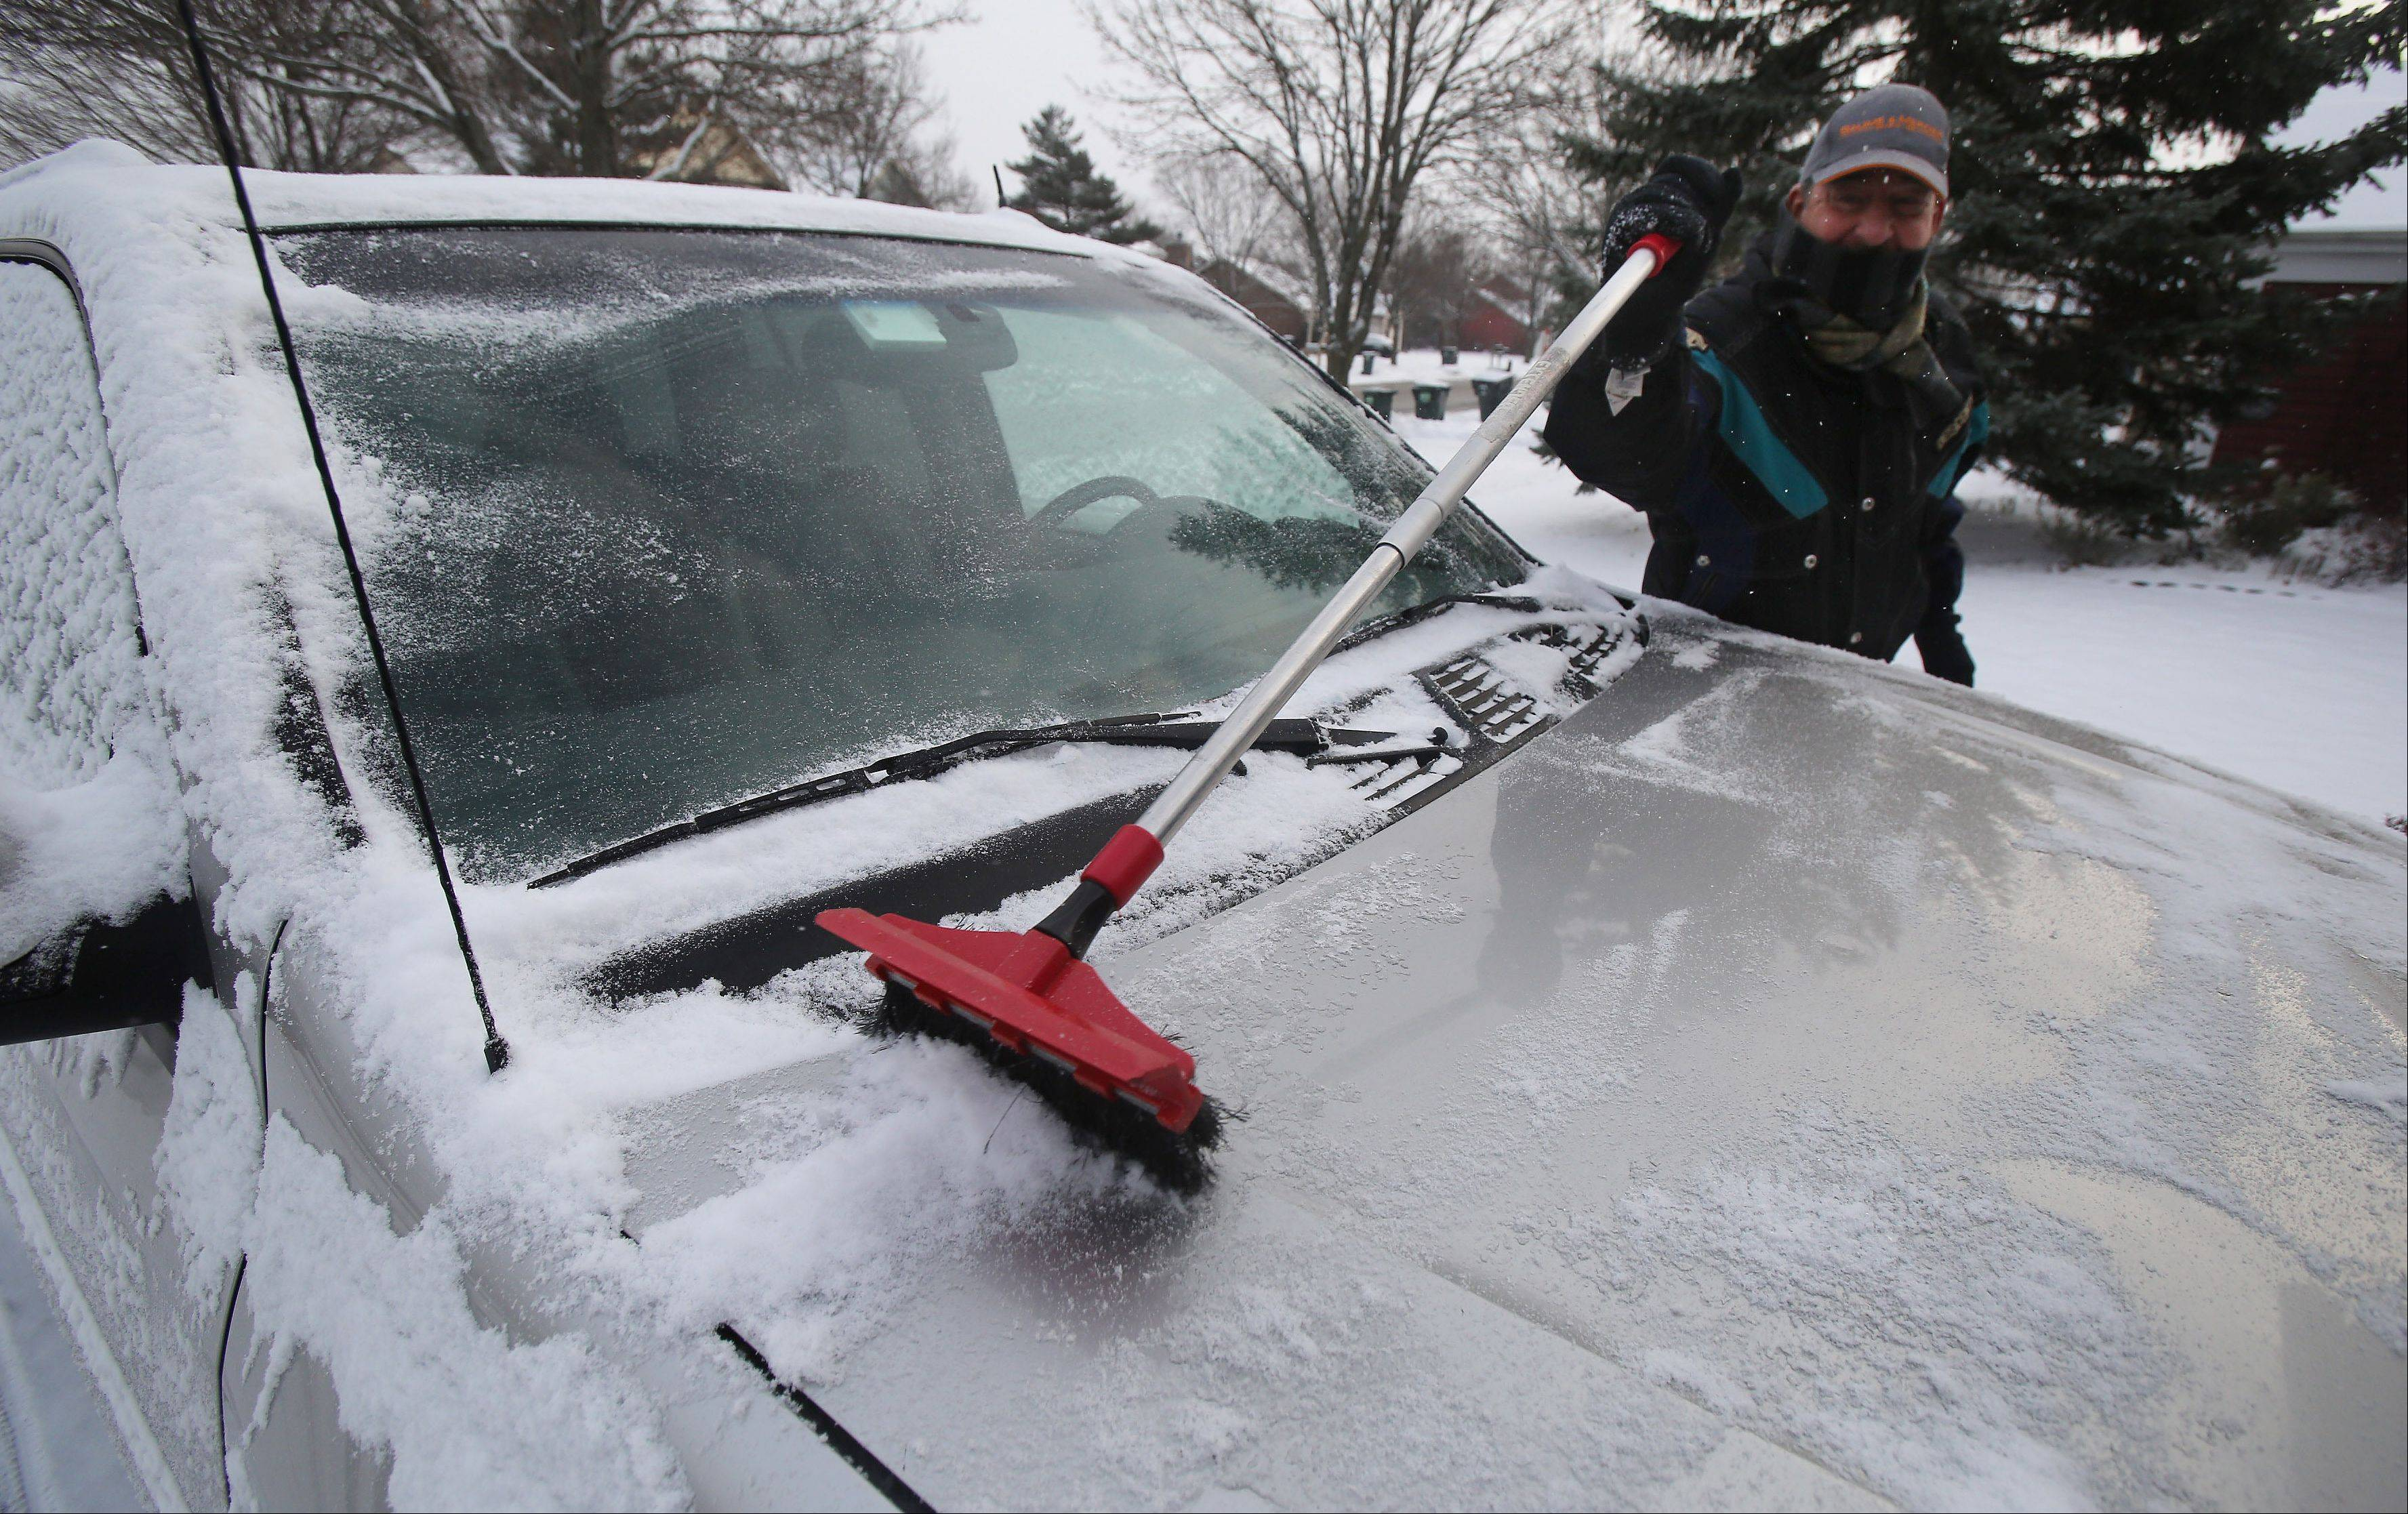 Mundelein resident Steve Kern clears the snow off his SUV after snow fell in Lake County Wednesday. Snow plows were out in force clearing streets during the early morning hours to help with commuter traffic.